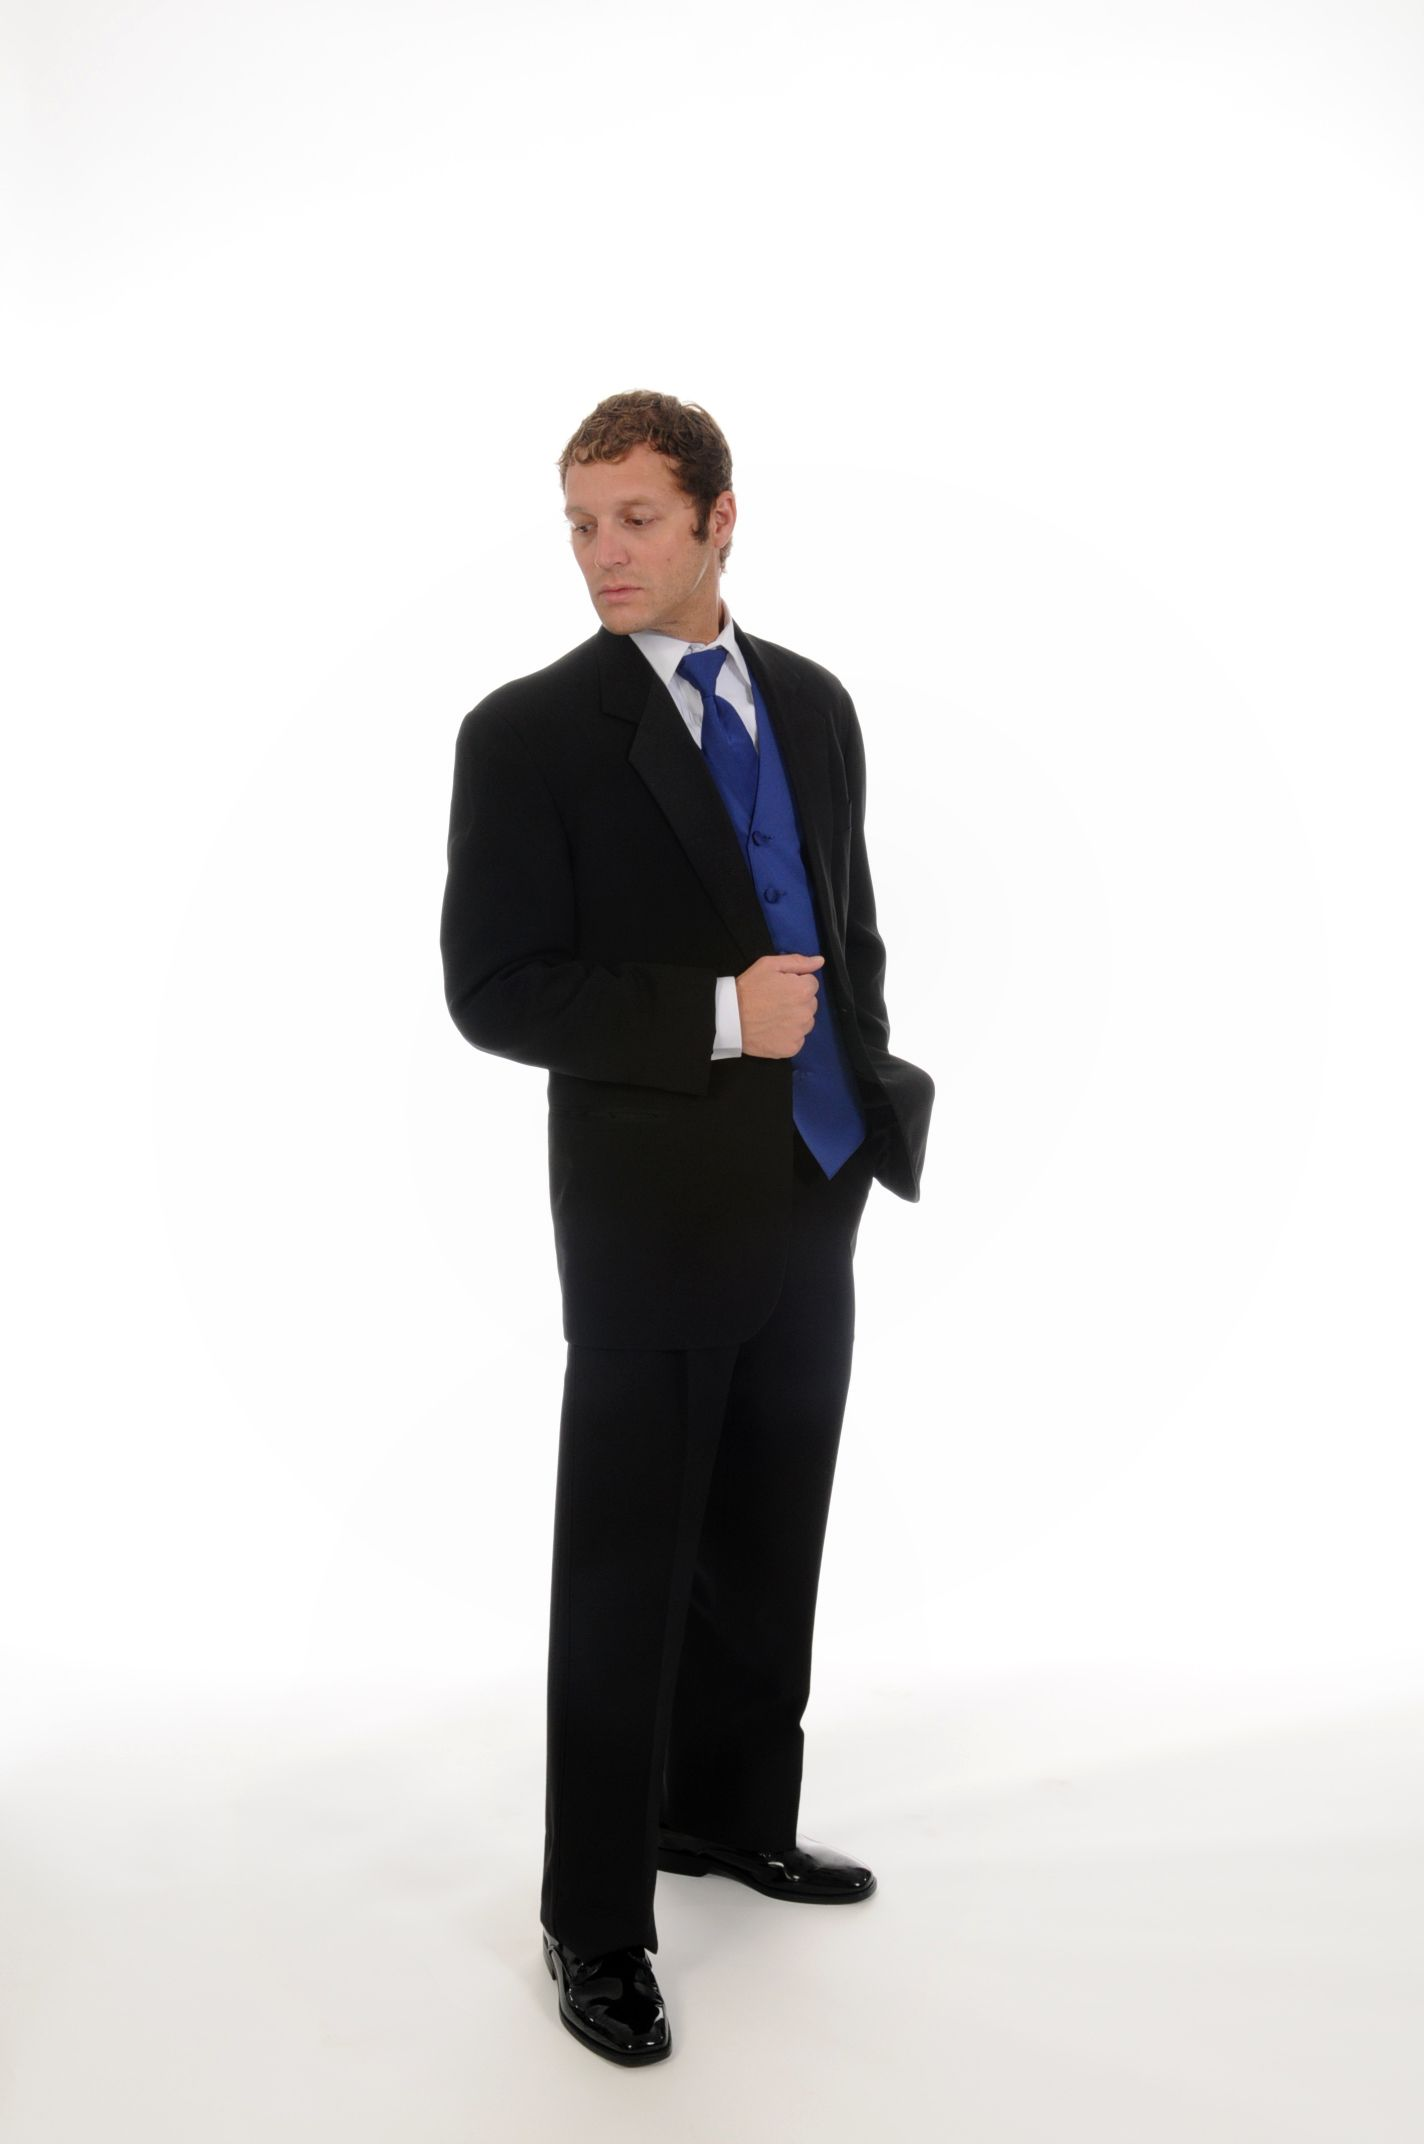 Black 1 button notch lapel tailcoat and pleated pants, white tuxedo shirt, cufflinks & studs. Accessorized with royal blue vest and tie.From the Henri's Formal Wear In House Collection #wedding #tuxedo